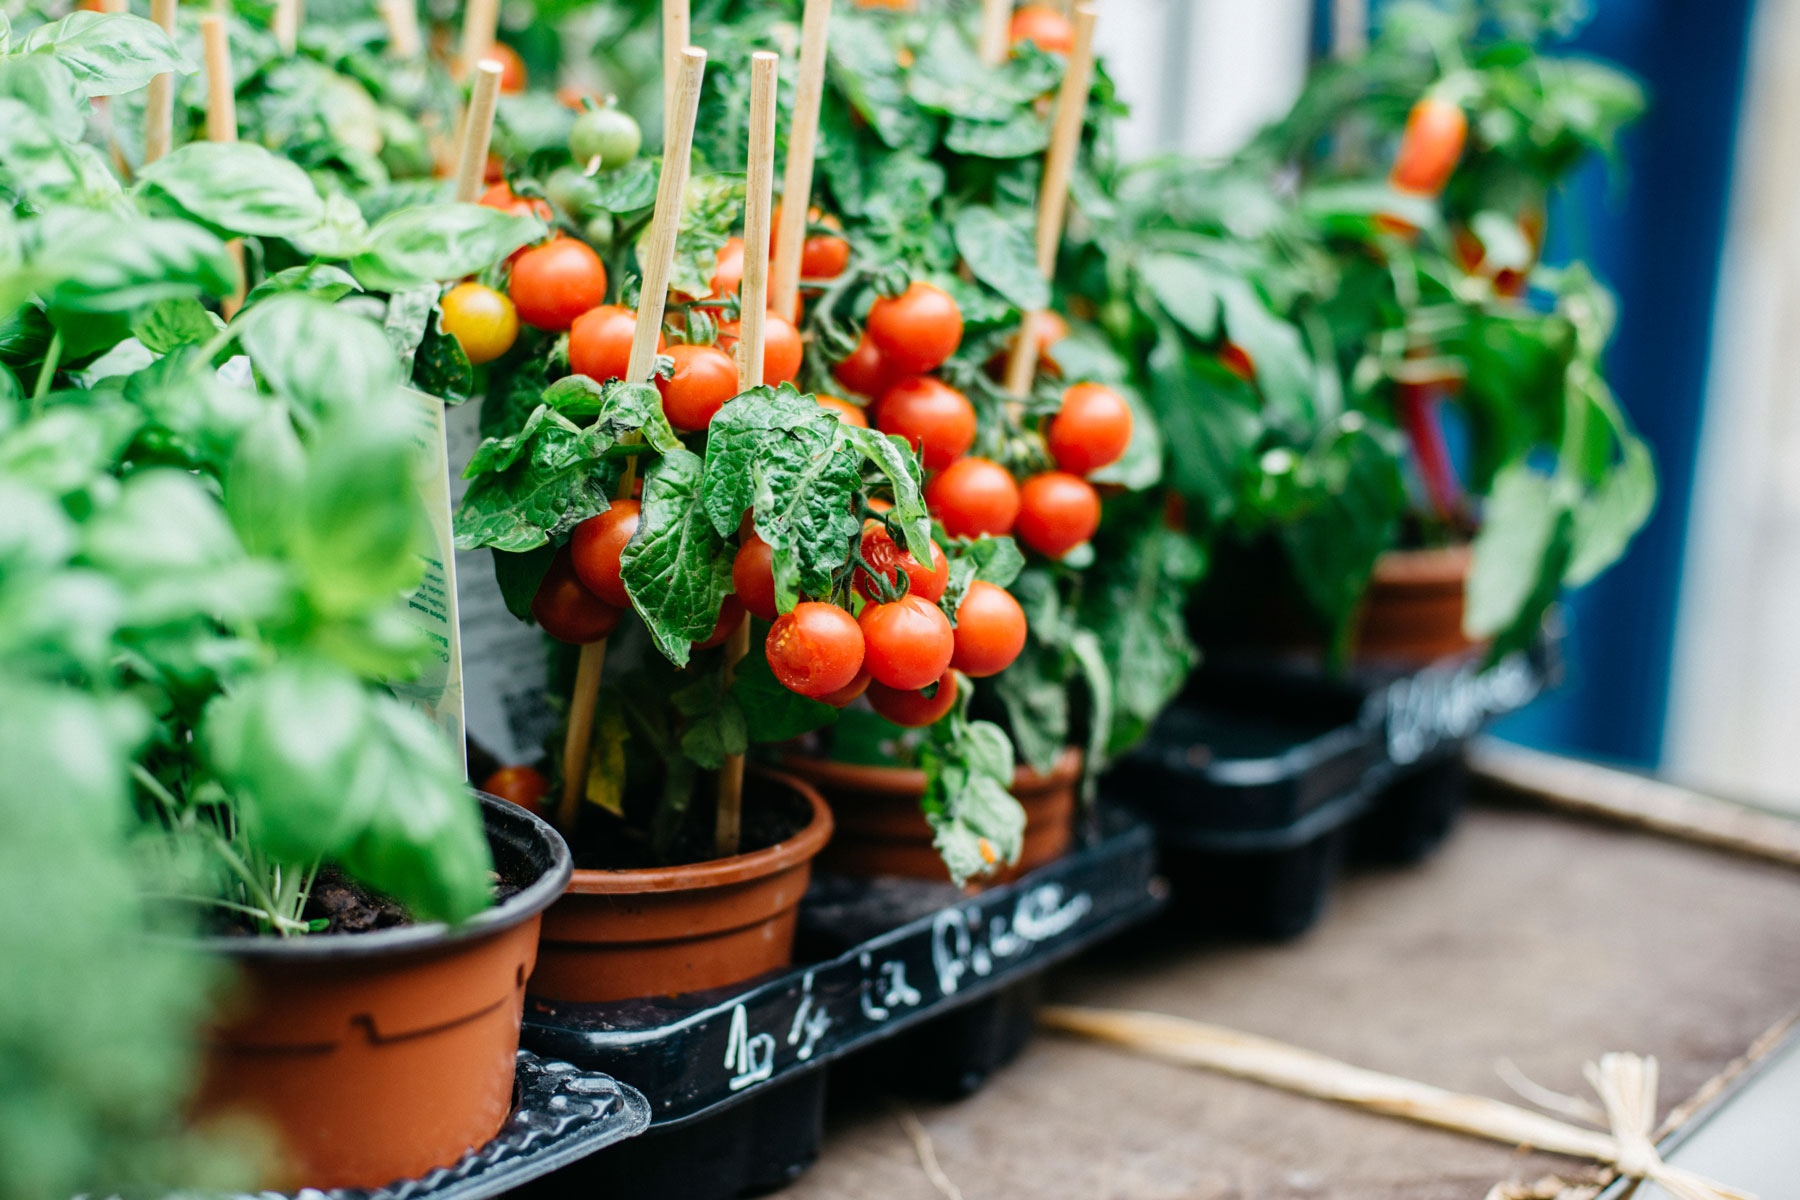 Cherry tomatoes growing in individual pots.